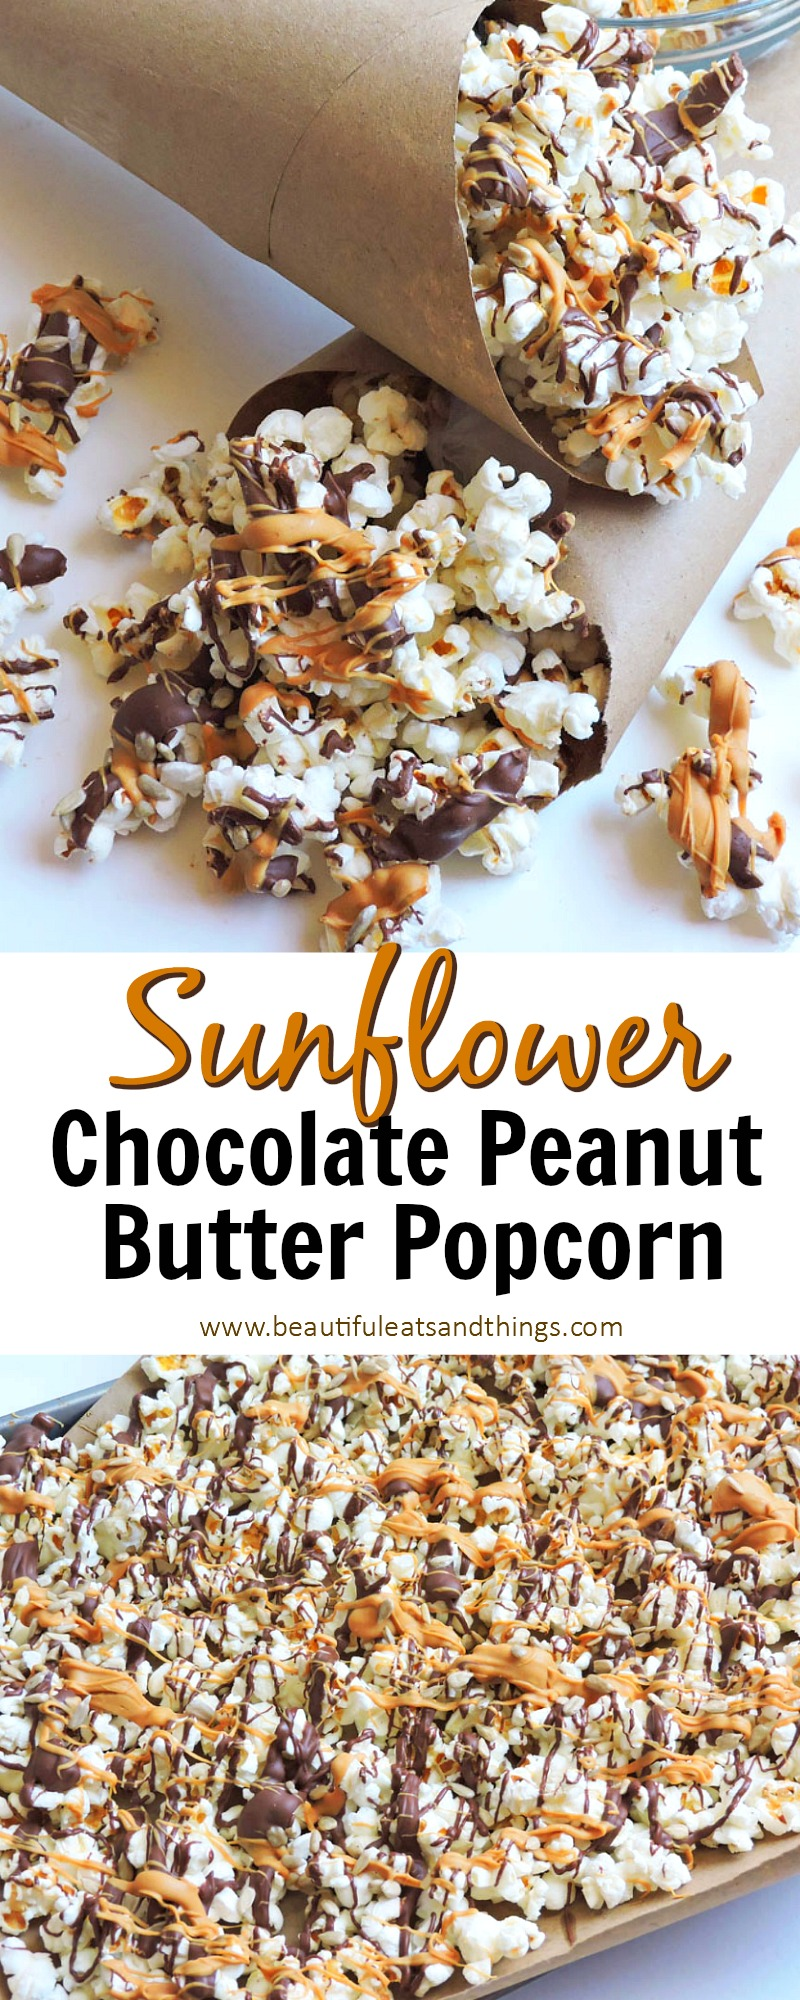 Sunflower Chocolate Peanut Butter Popcorn